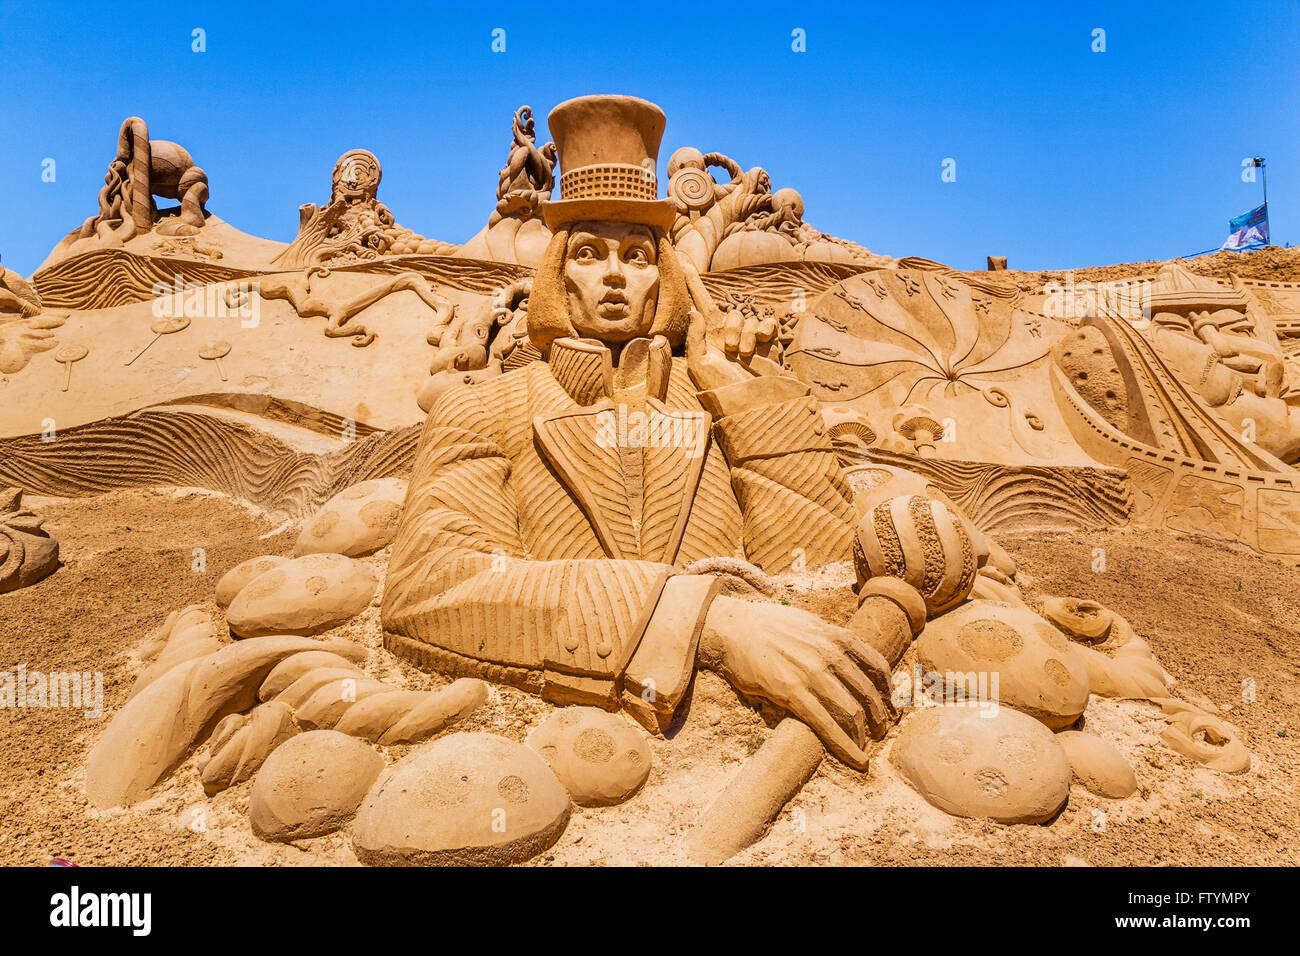 Portugal, Algarve, Faro district, Pera, Willy Wonka sculpture at the FIESA International Sand Festival - Stock Image